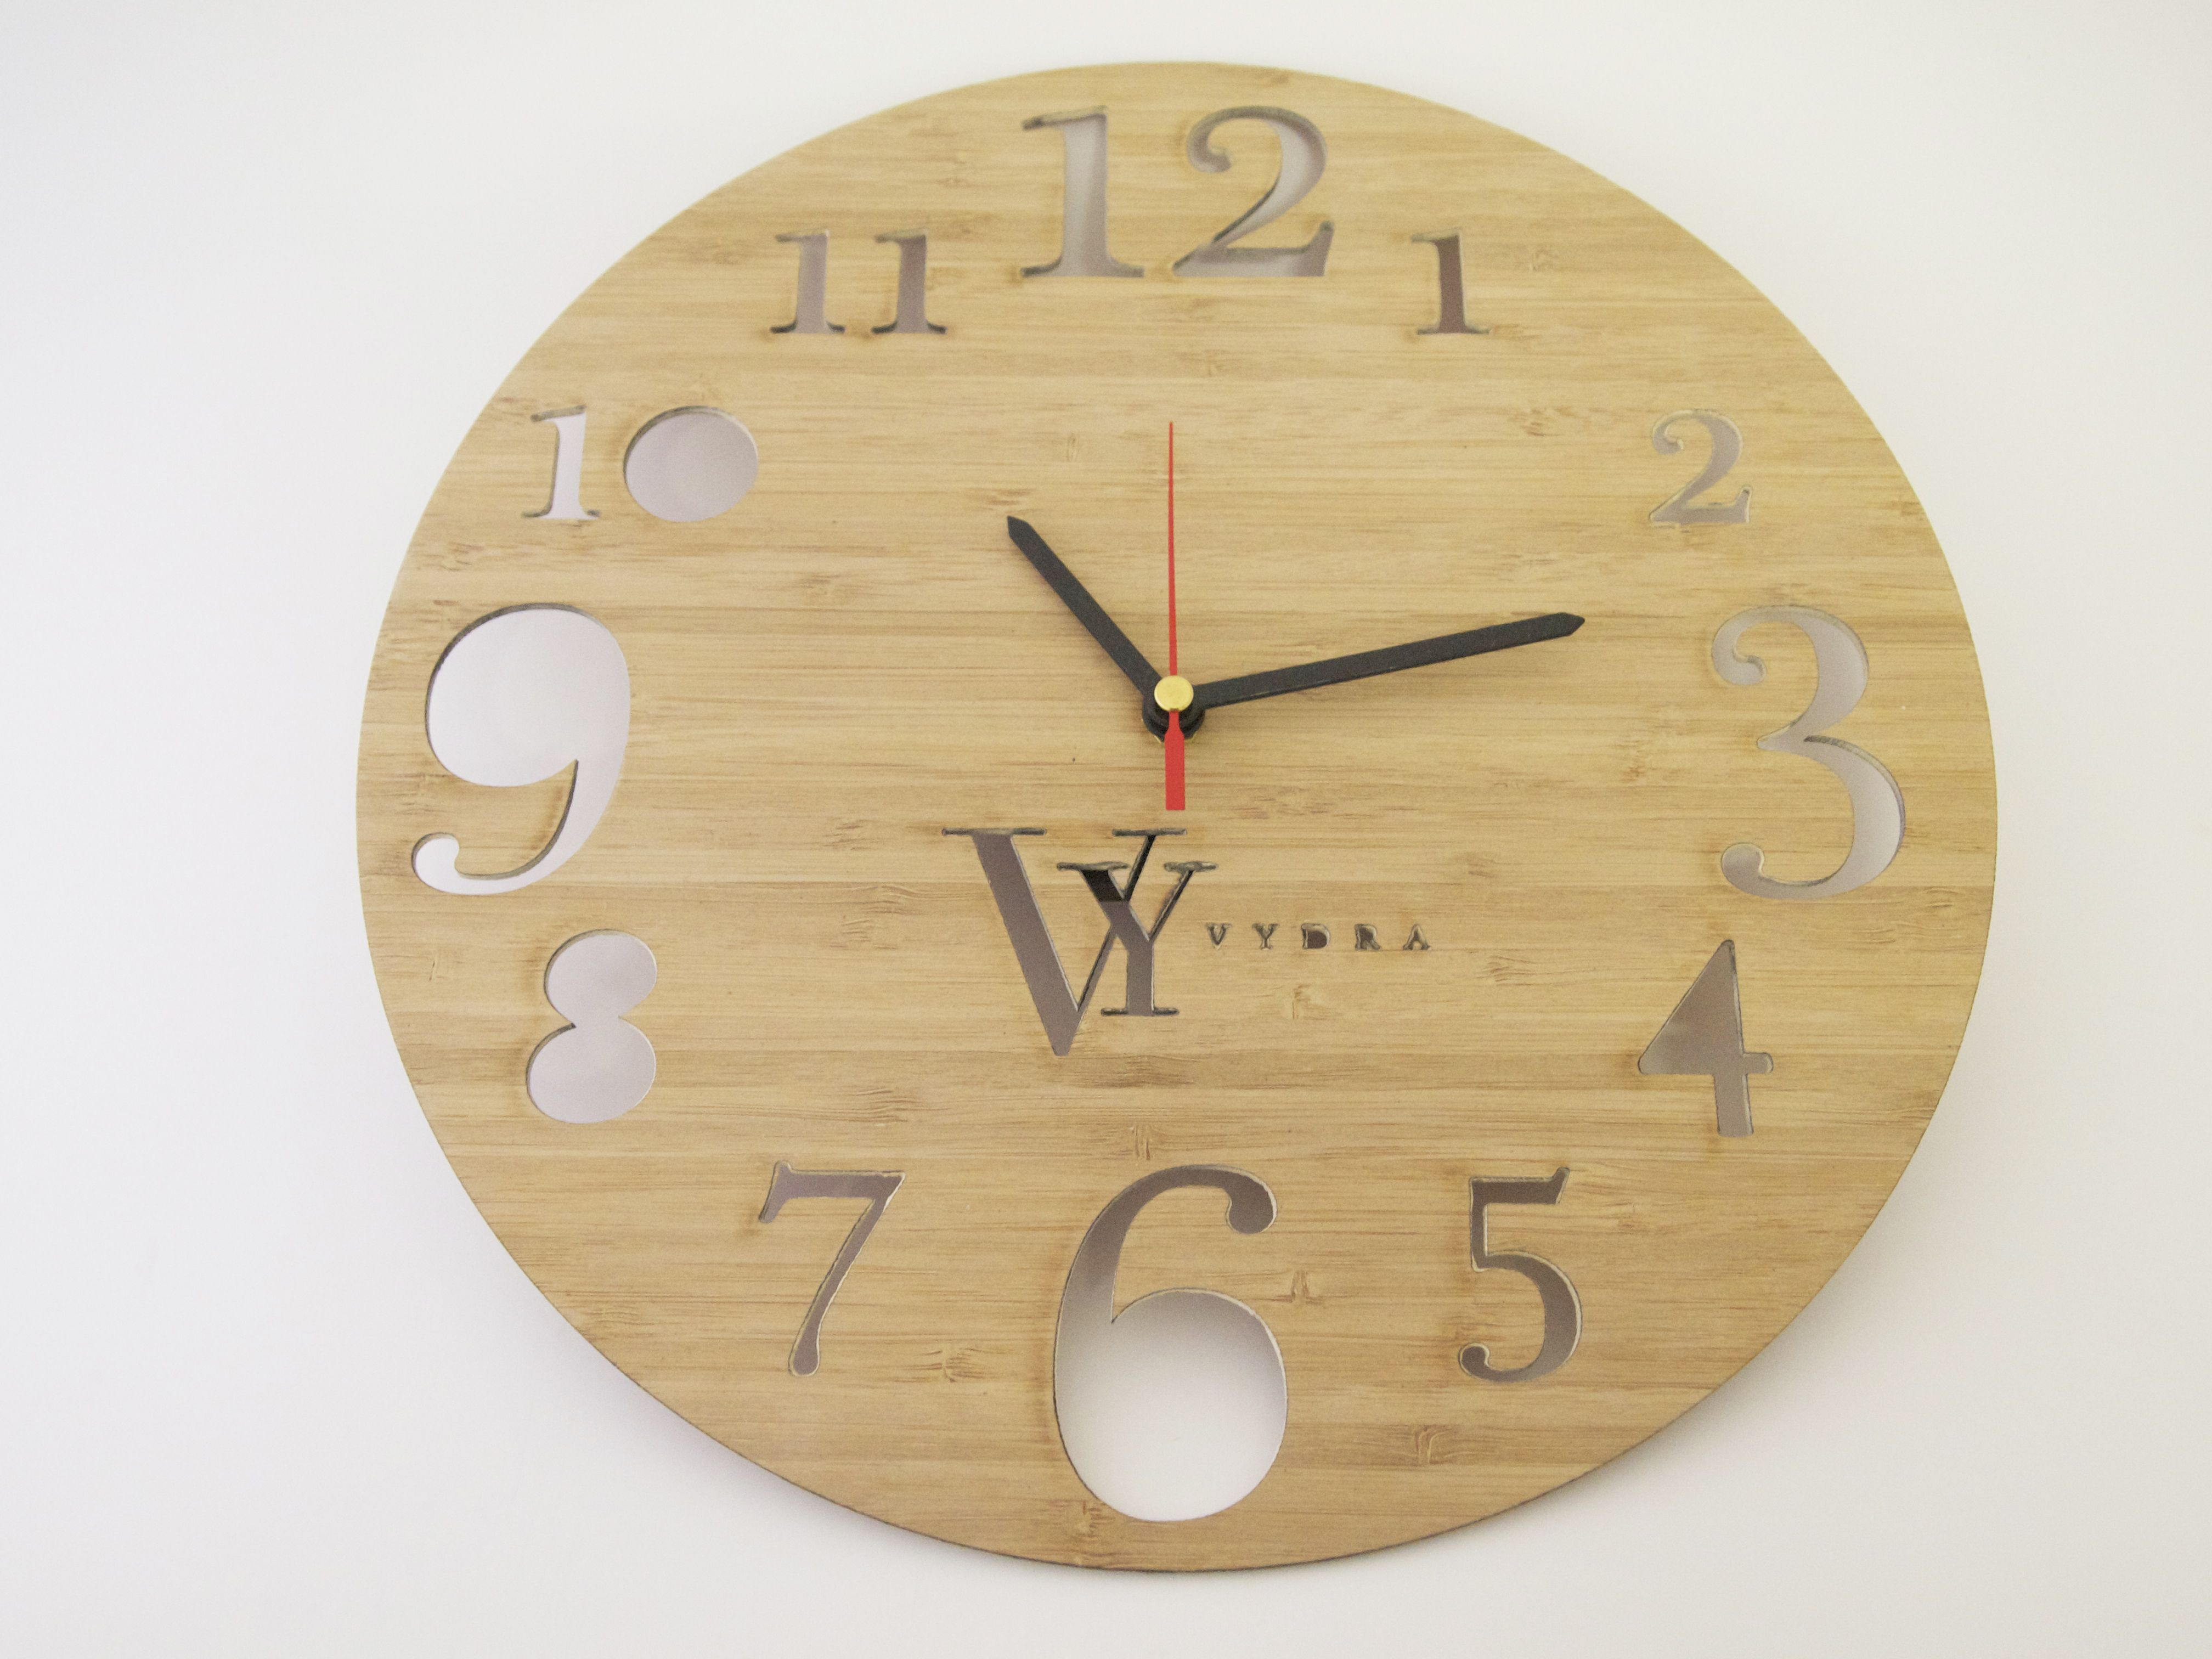 Personalised laser cut clock using bamboo wood custom made pieces personalised laser cut clock using bamboo wood custom made pieces engraved with names and messages amipublicfo Gallery